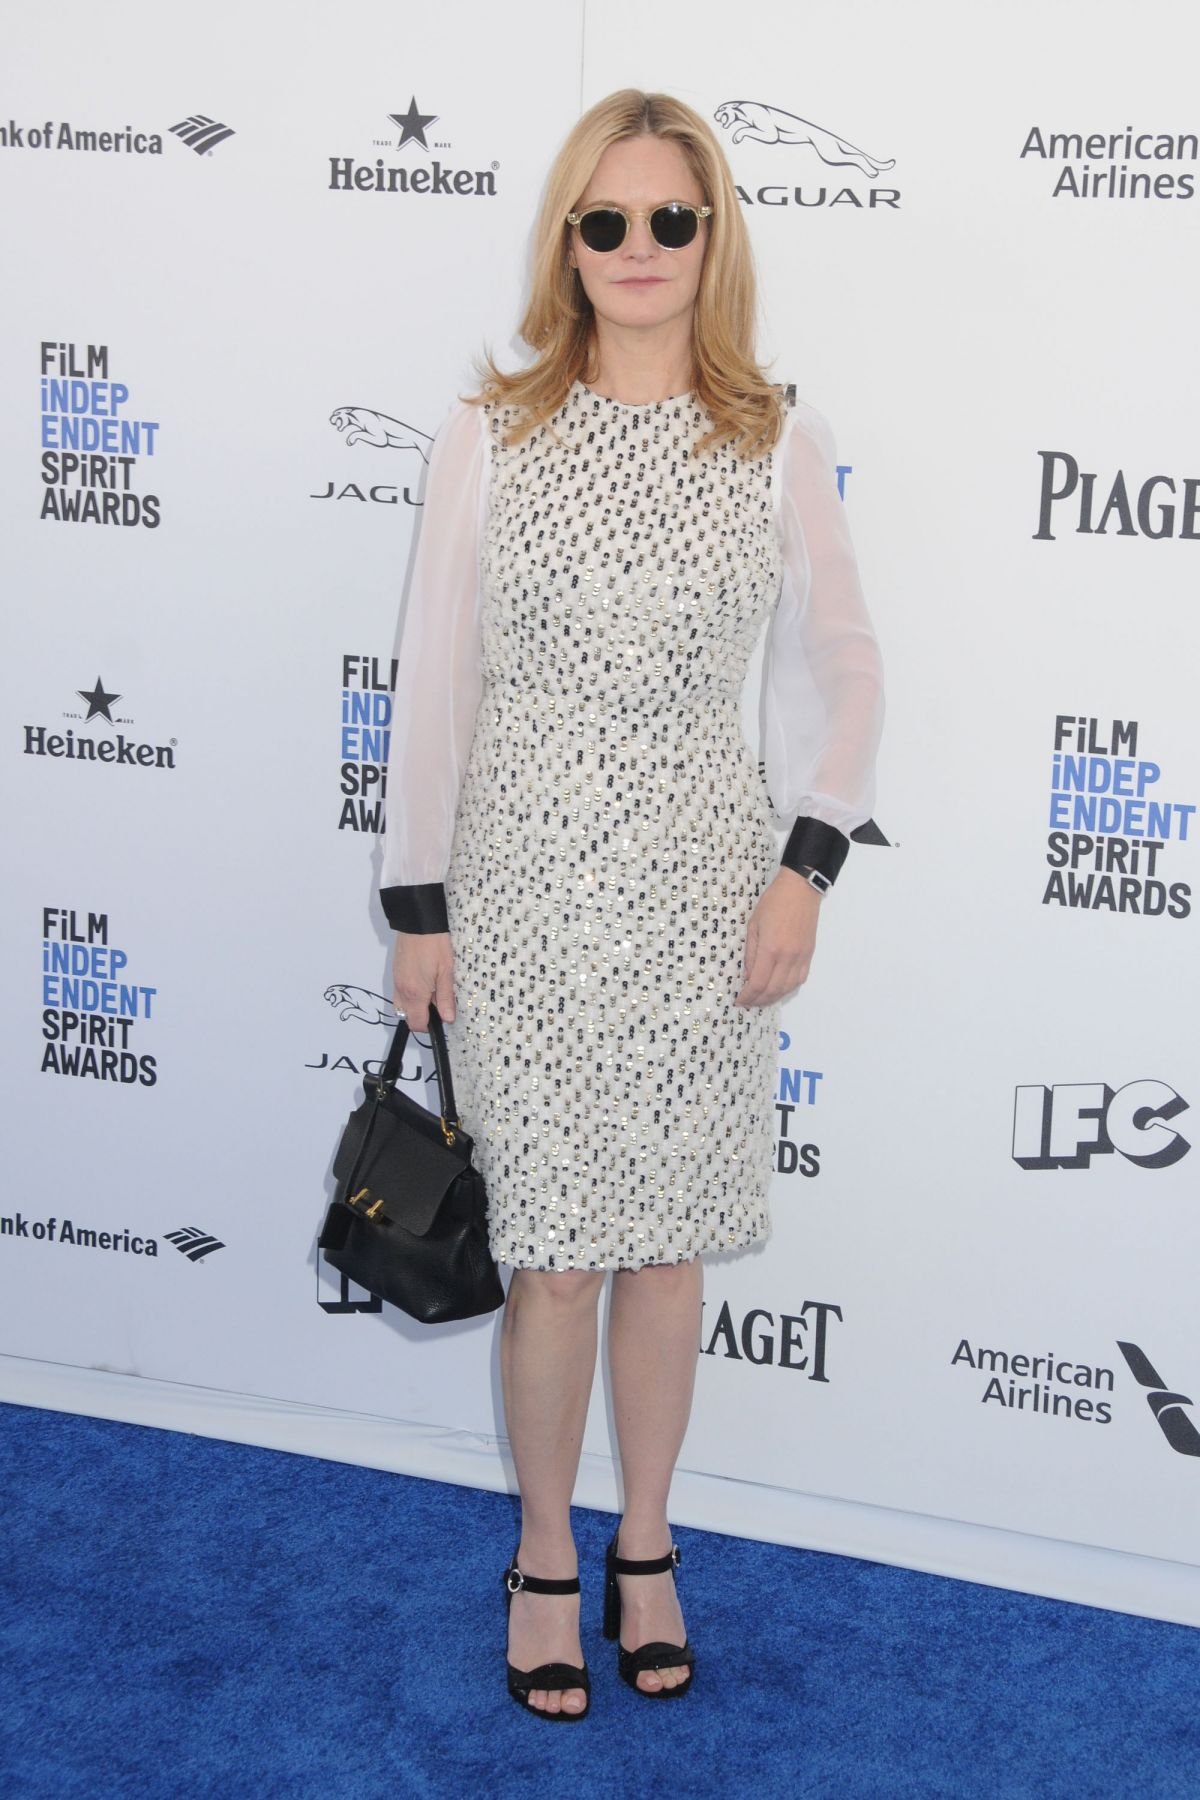 JENNIFER JASON LEIGH at Film Independent Spirit Awards in Santa Monica 02/27/2016